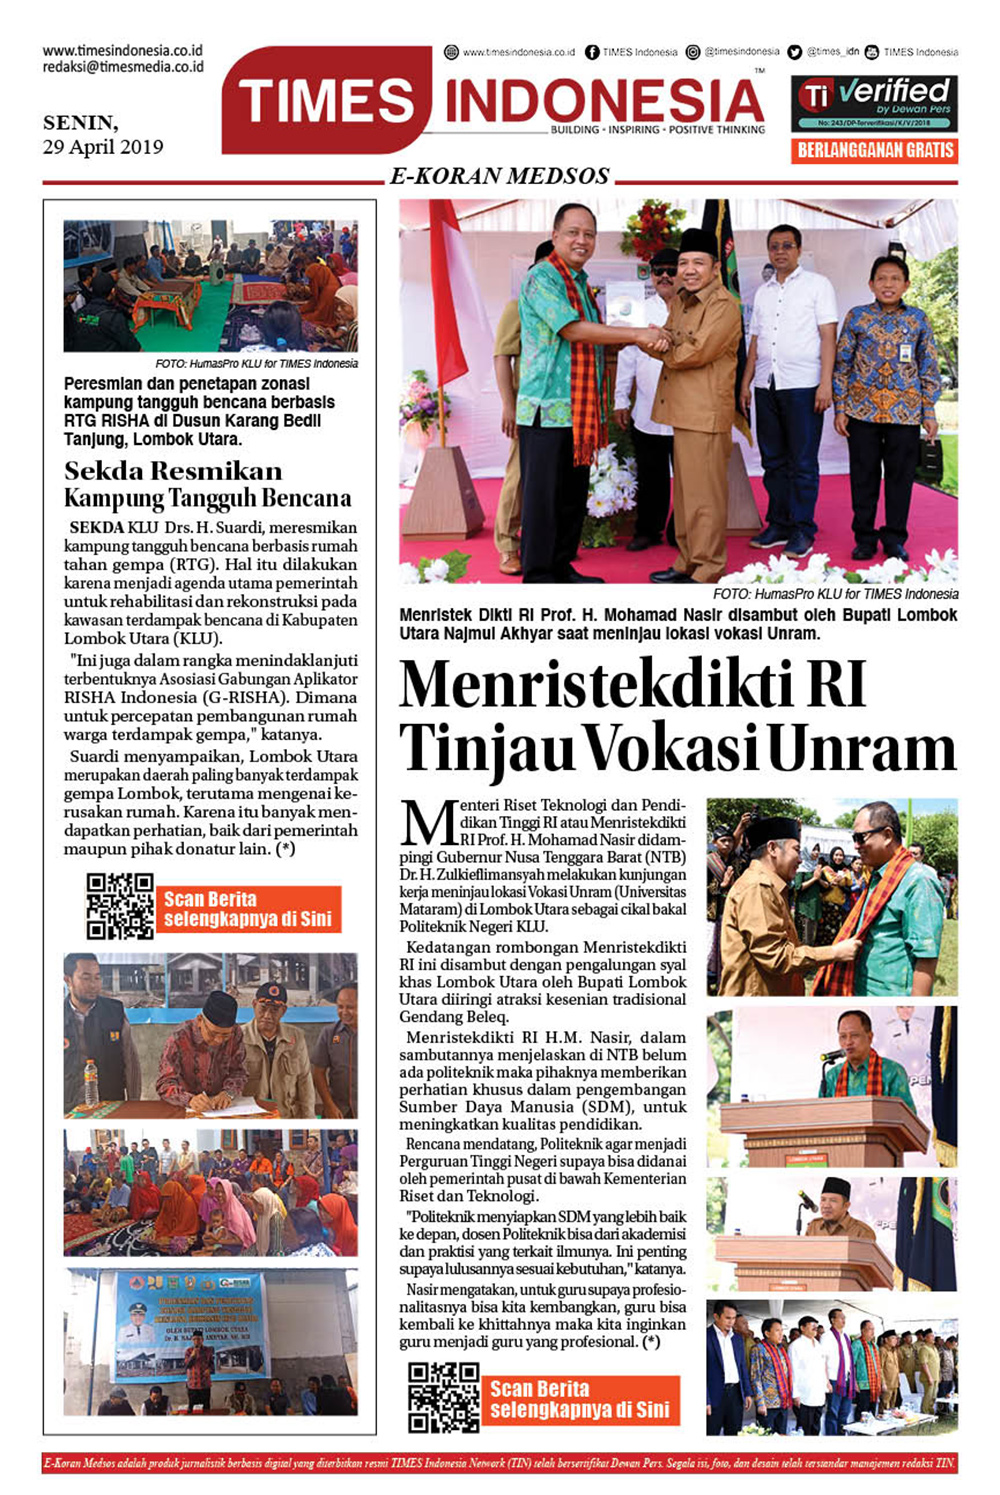 Edisi-Senin-29-April-2019.jpg